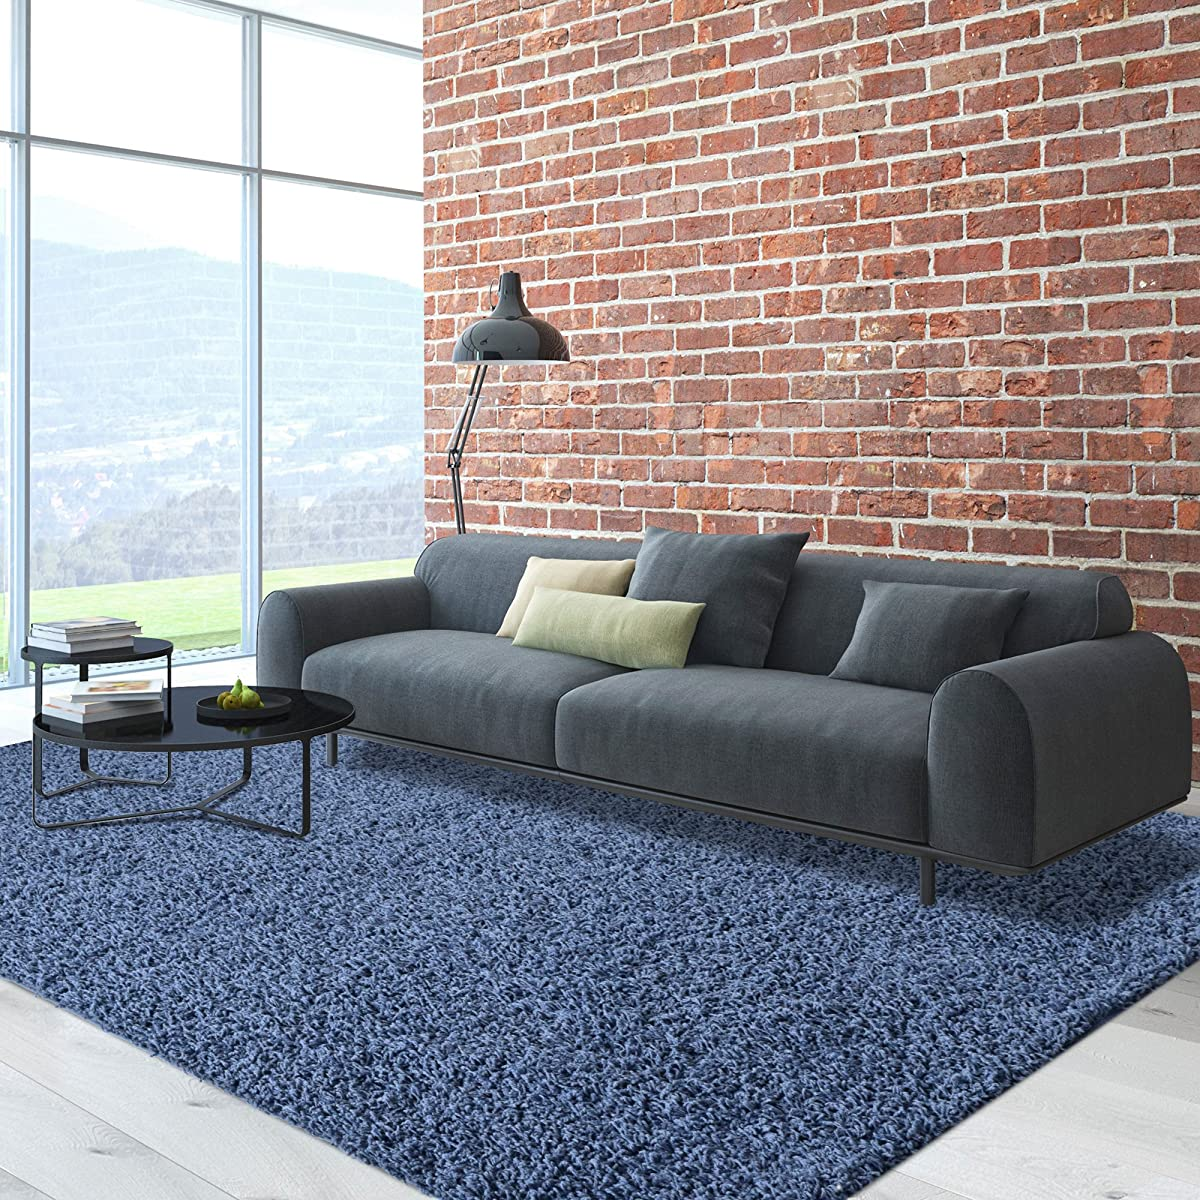 iCustomRug Dixie Cozy Soft And Plush Pile, 5ft0in x 7ft0in (5X7) Shag Area Rug In Indigo Blue